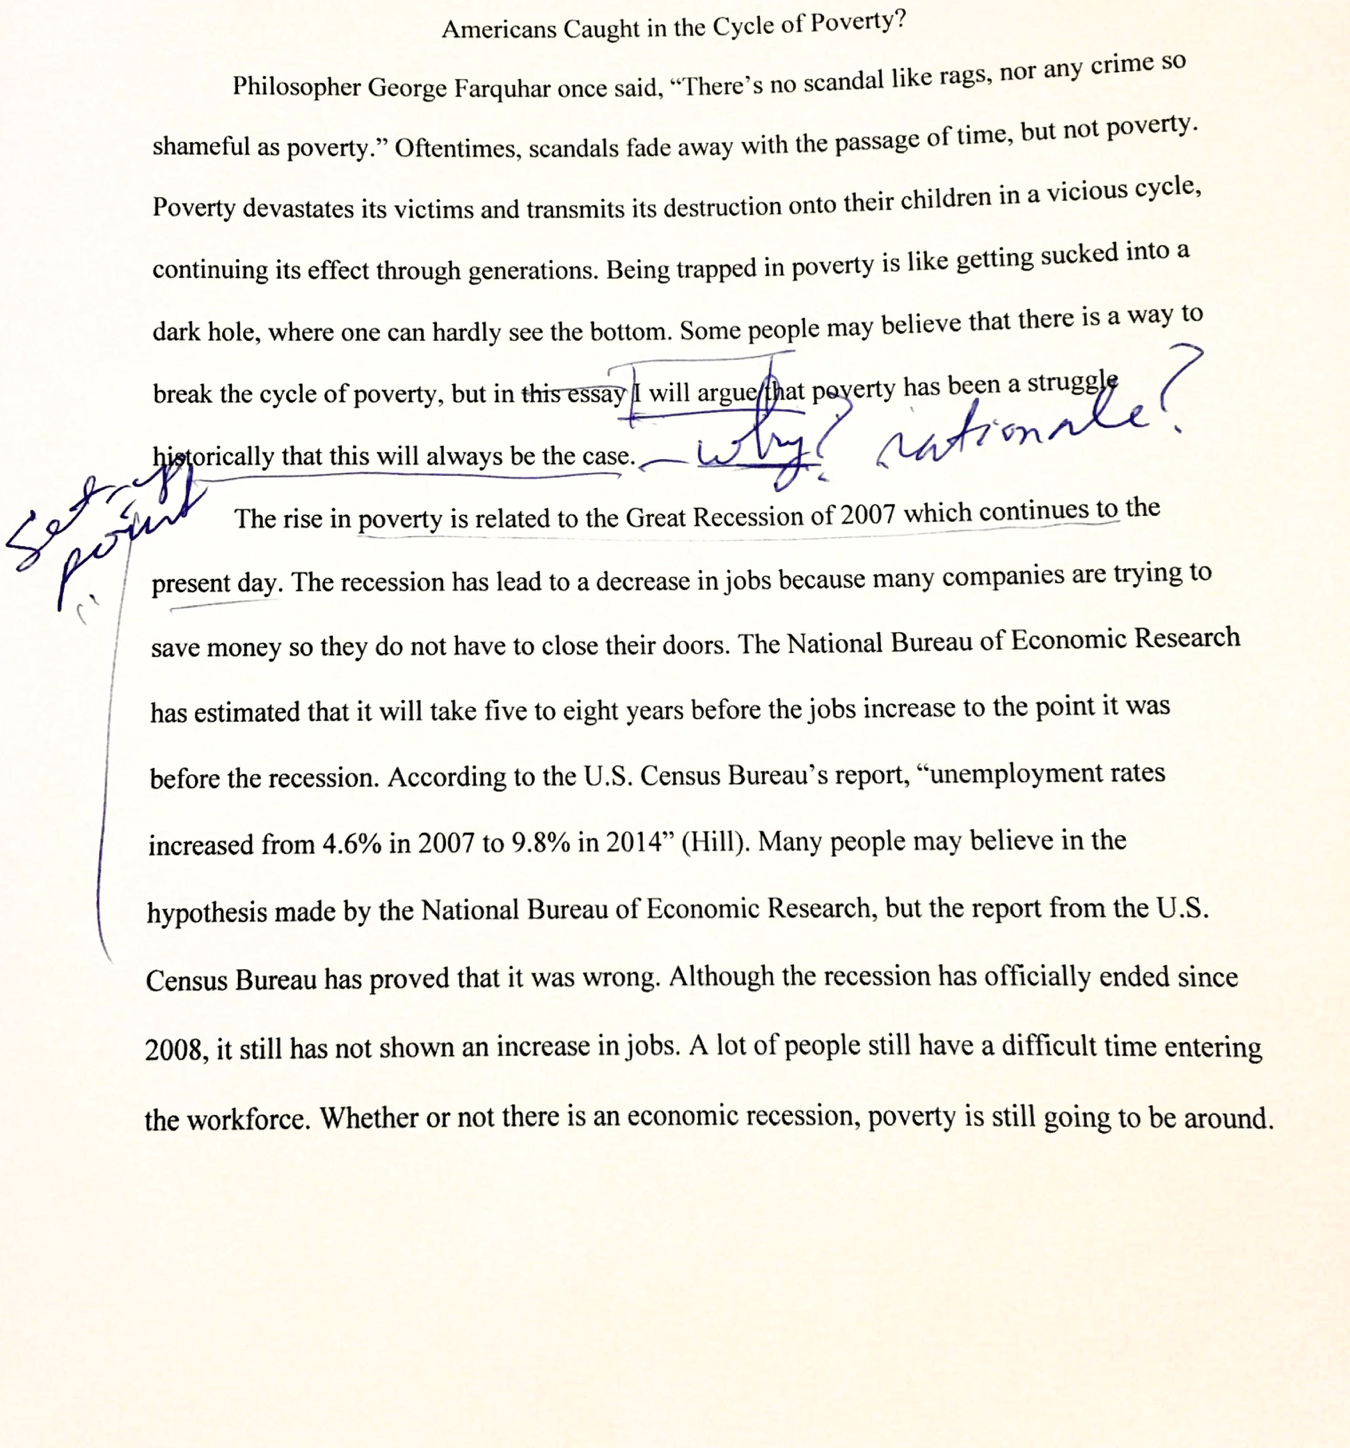 008 Reword My Essay Unique Free Full